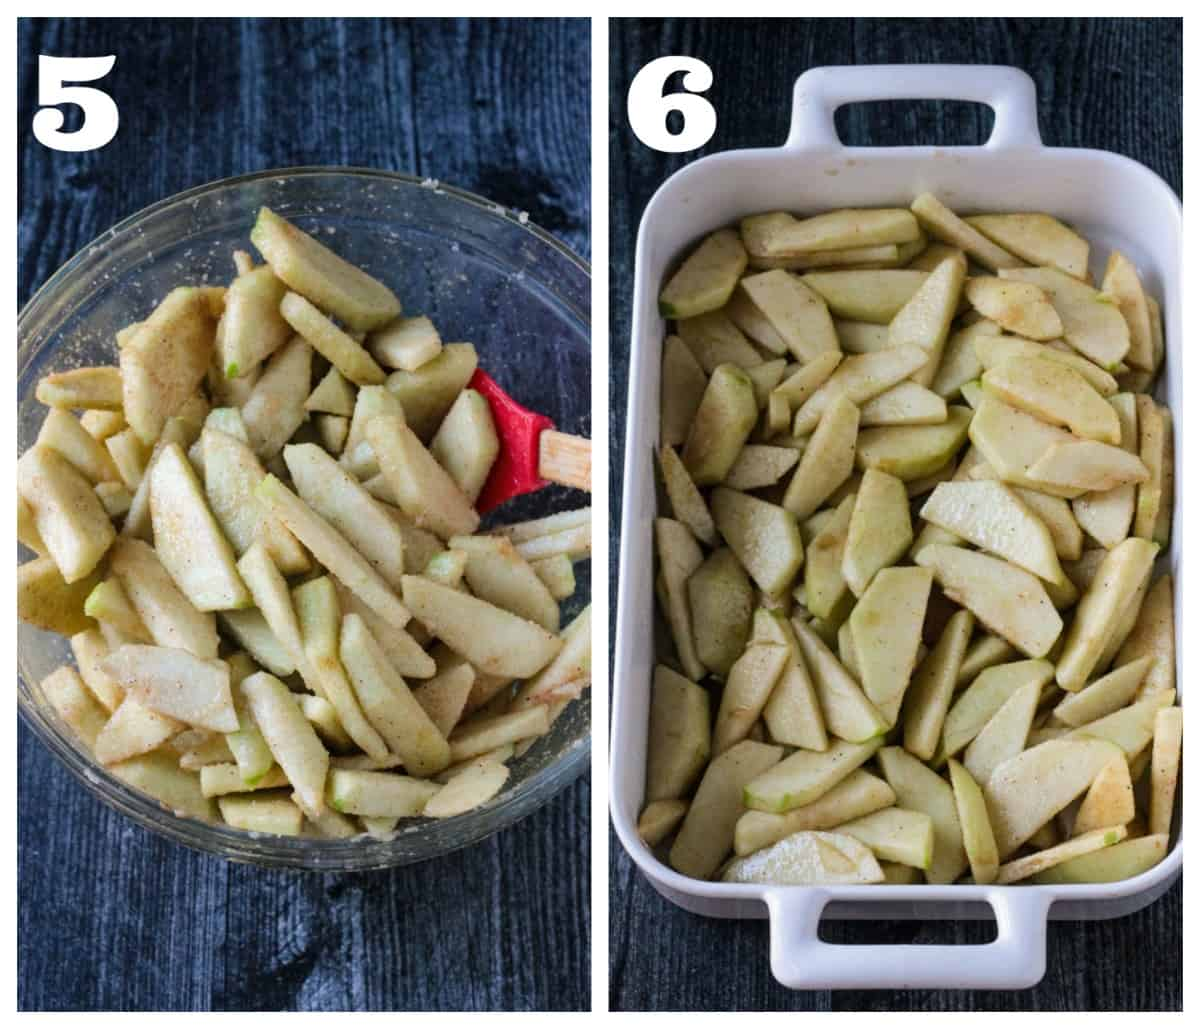 2 photo collage depicting filling a baking pan with sugar spiced sliced apples.